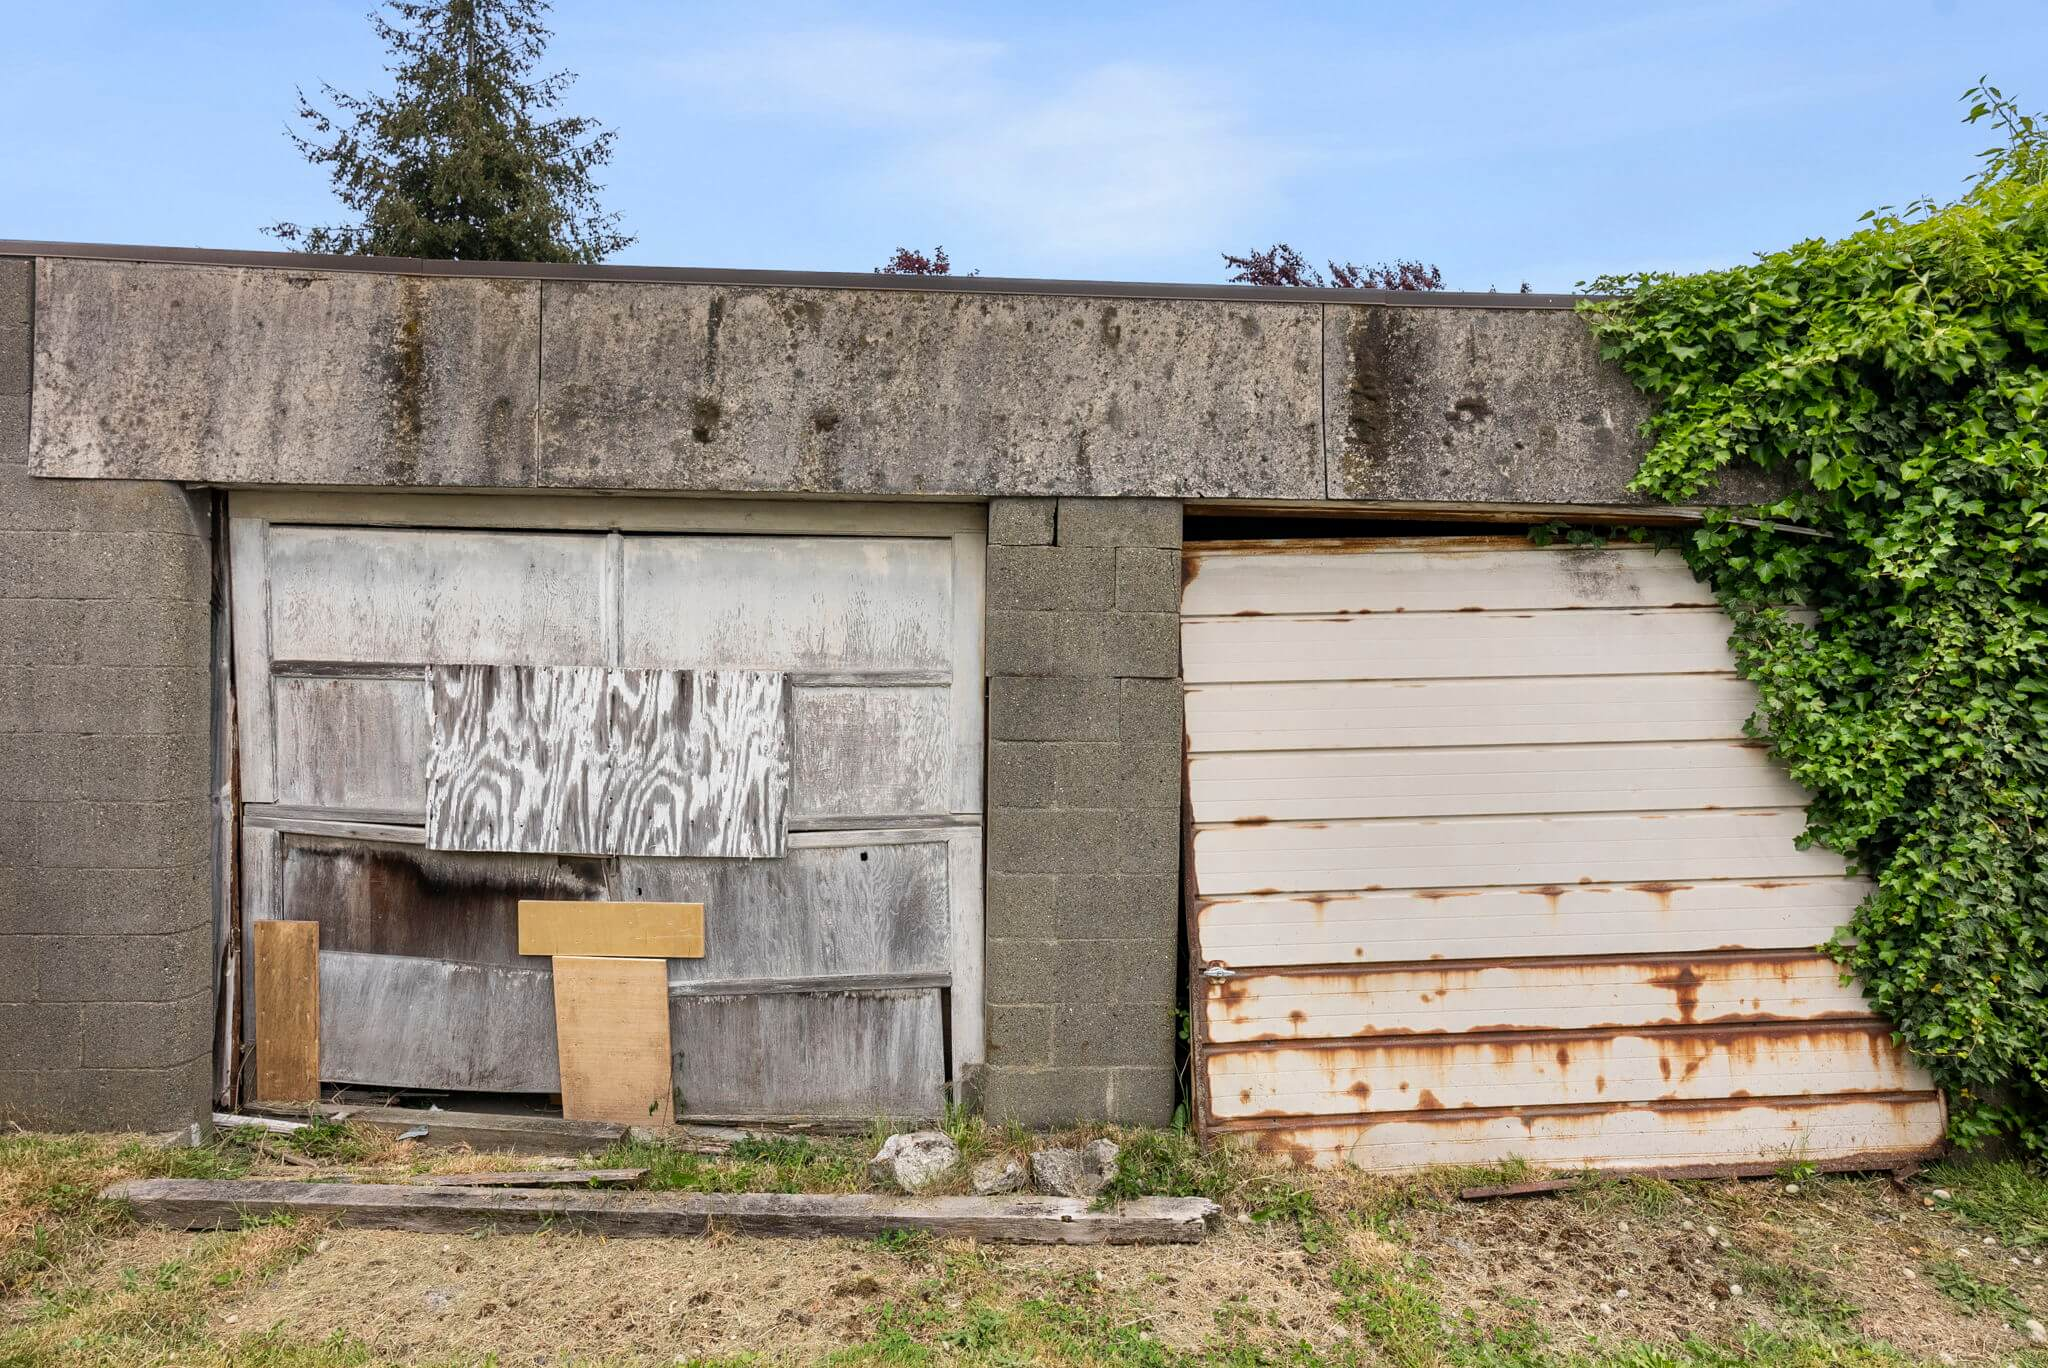 Two car garage that could be replaced with a new garage and/or DADU